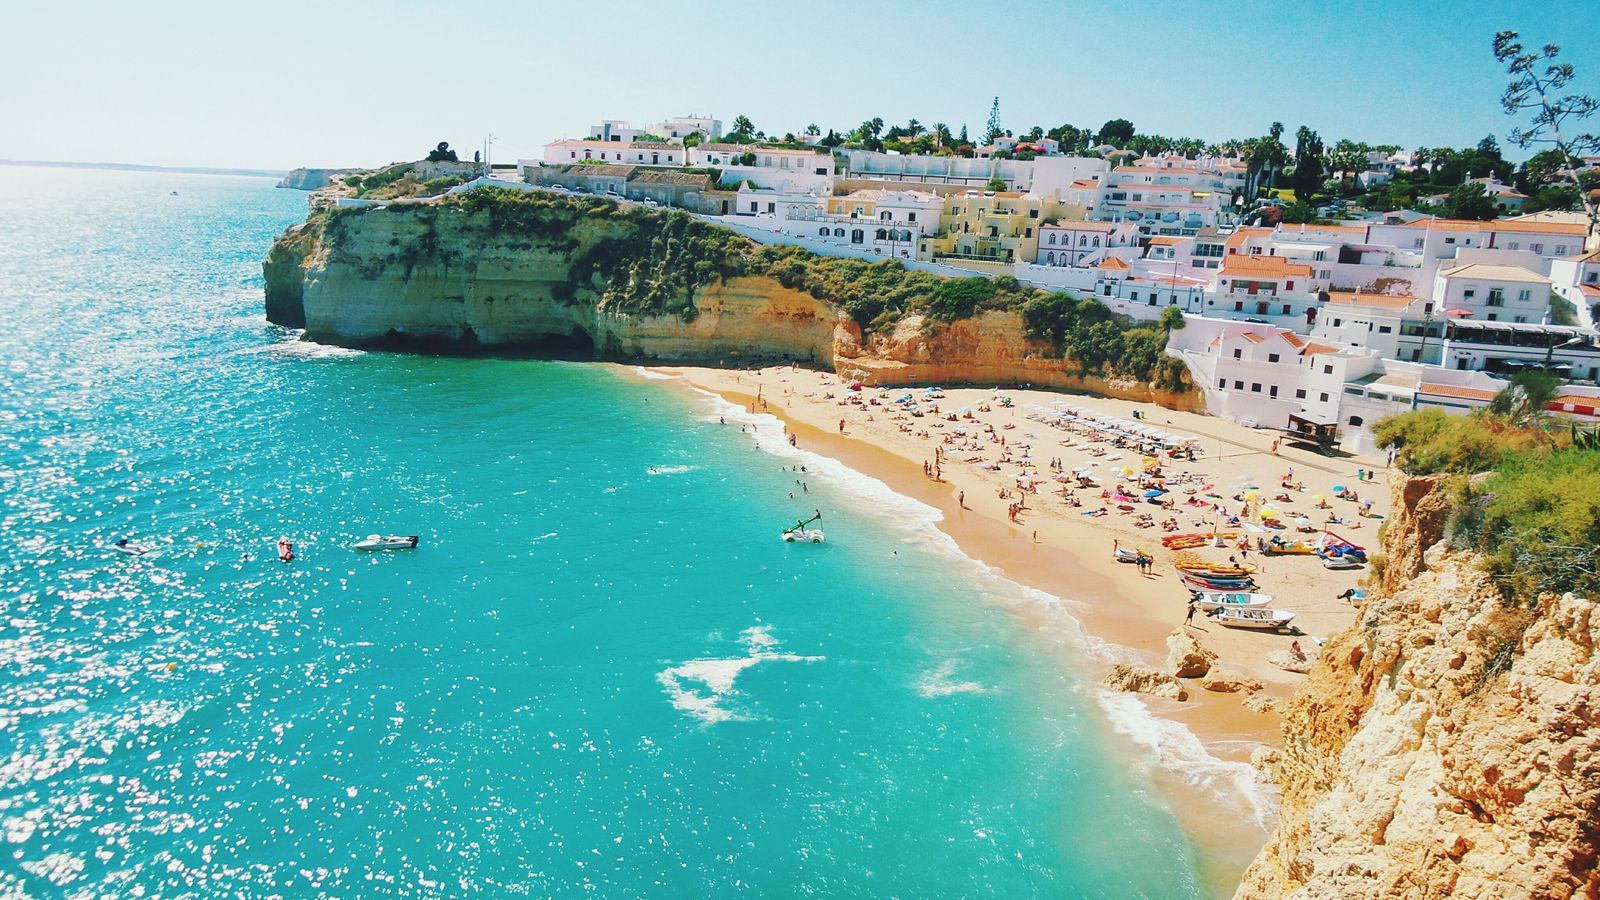 10 of the cheapest allinclusive holiday destinations this